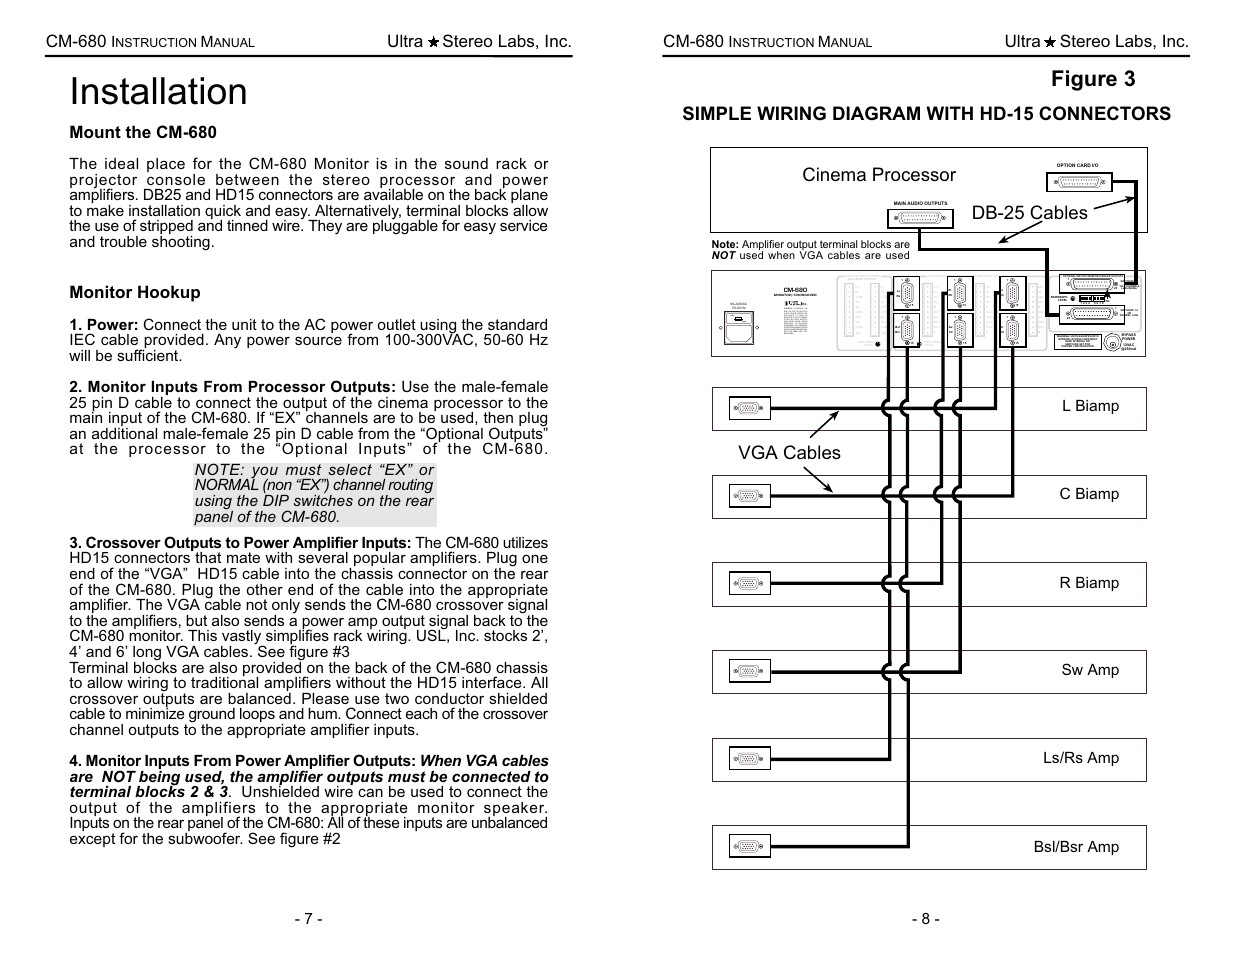 installation, figure 3, simple wiring diagram with hd-15 connectors | usl  cm-680 user manual | page 8 / 16